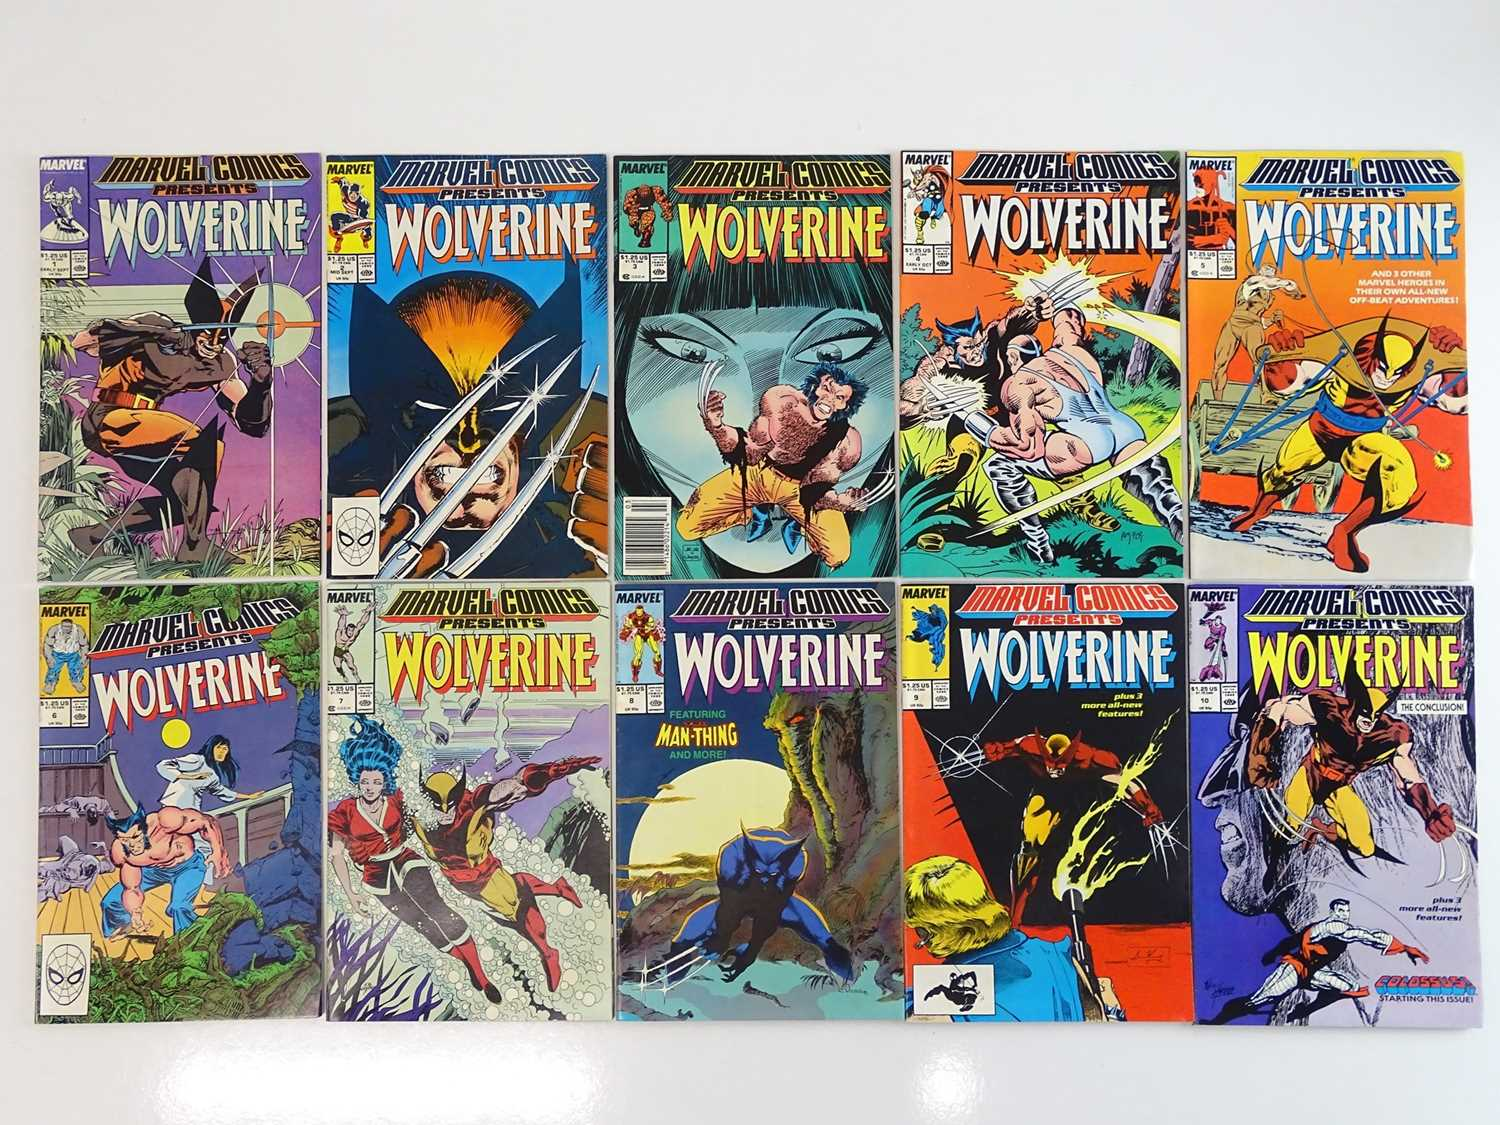 MARVEL COMICS PRESENTS: WOLVERINE - (10 in Lot) - (1988/89 - MARVEL) - Complete 10 issue Wolverine